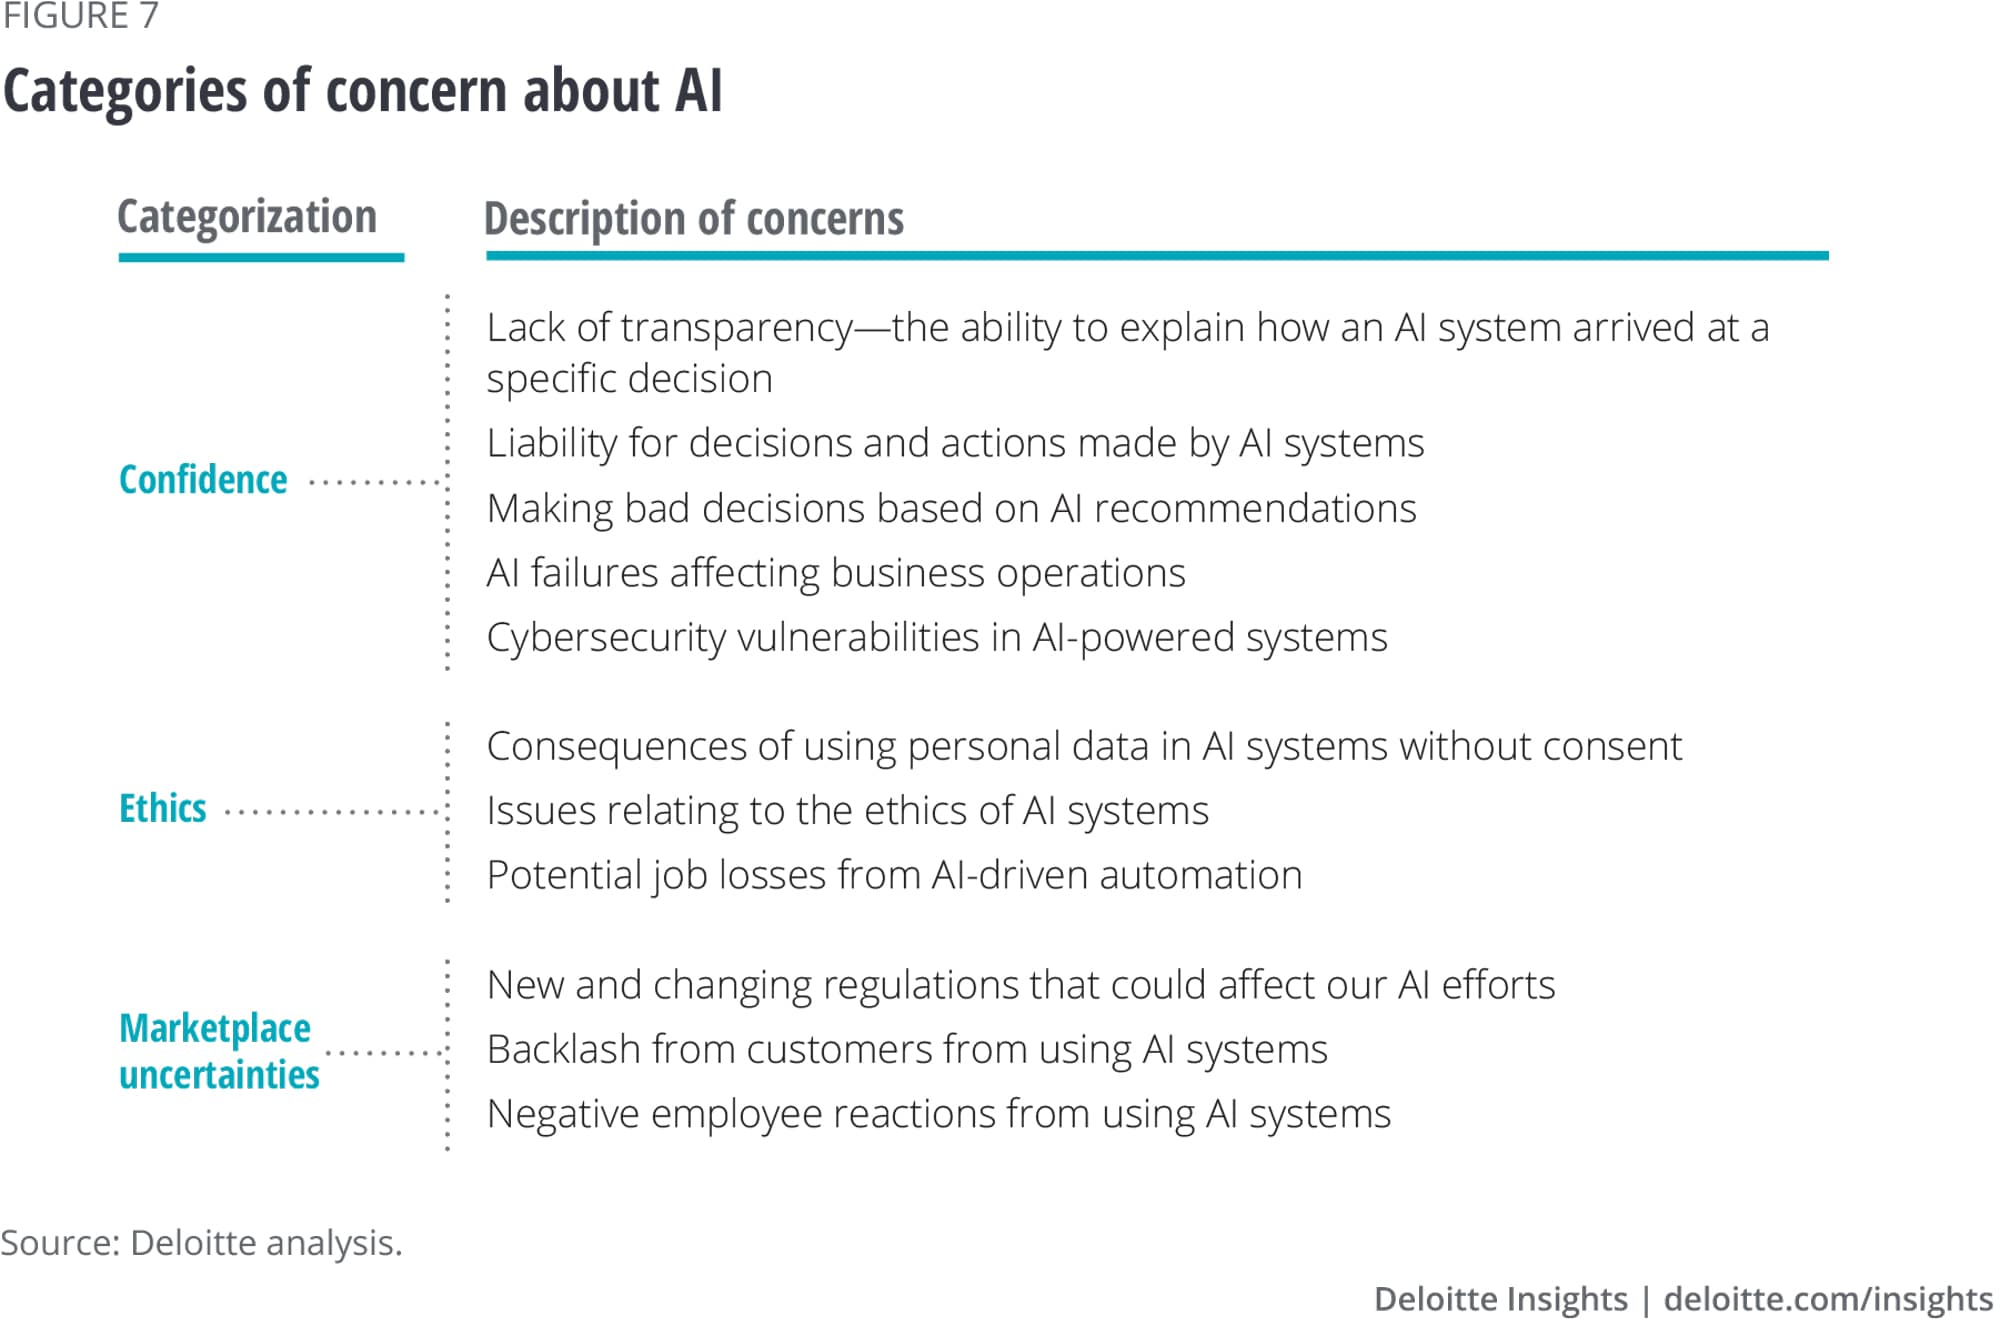 Categories of concern about AI